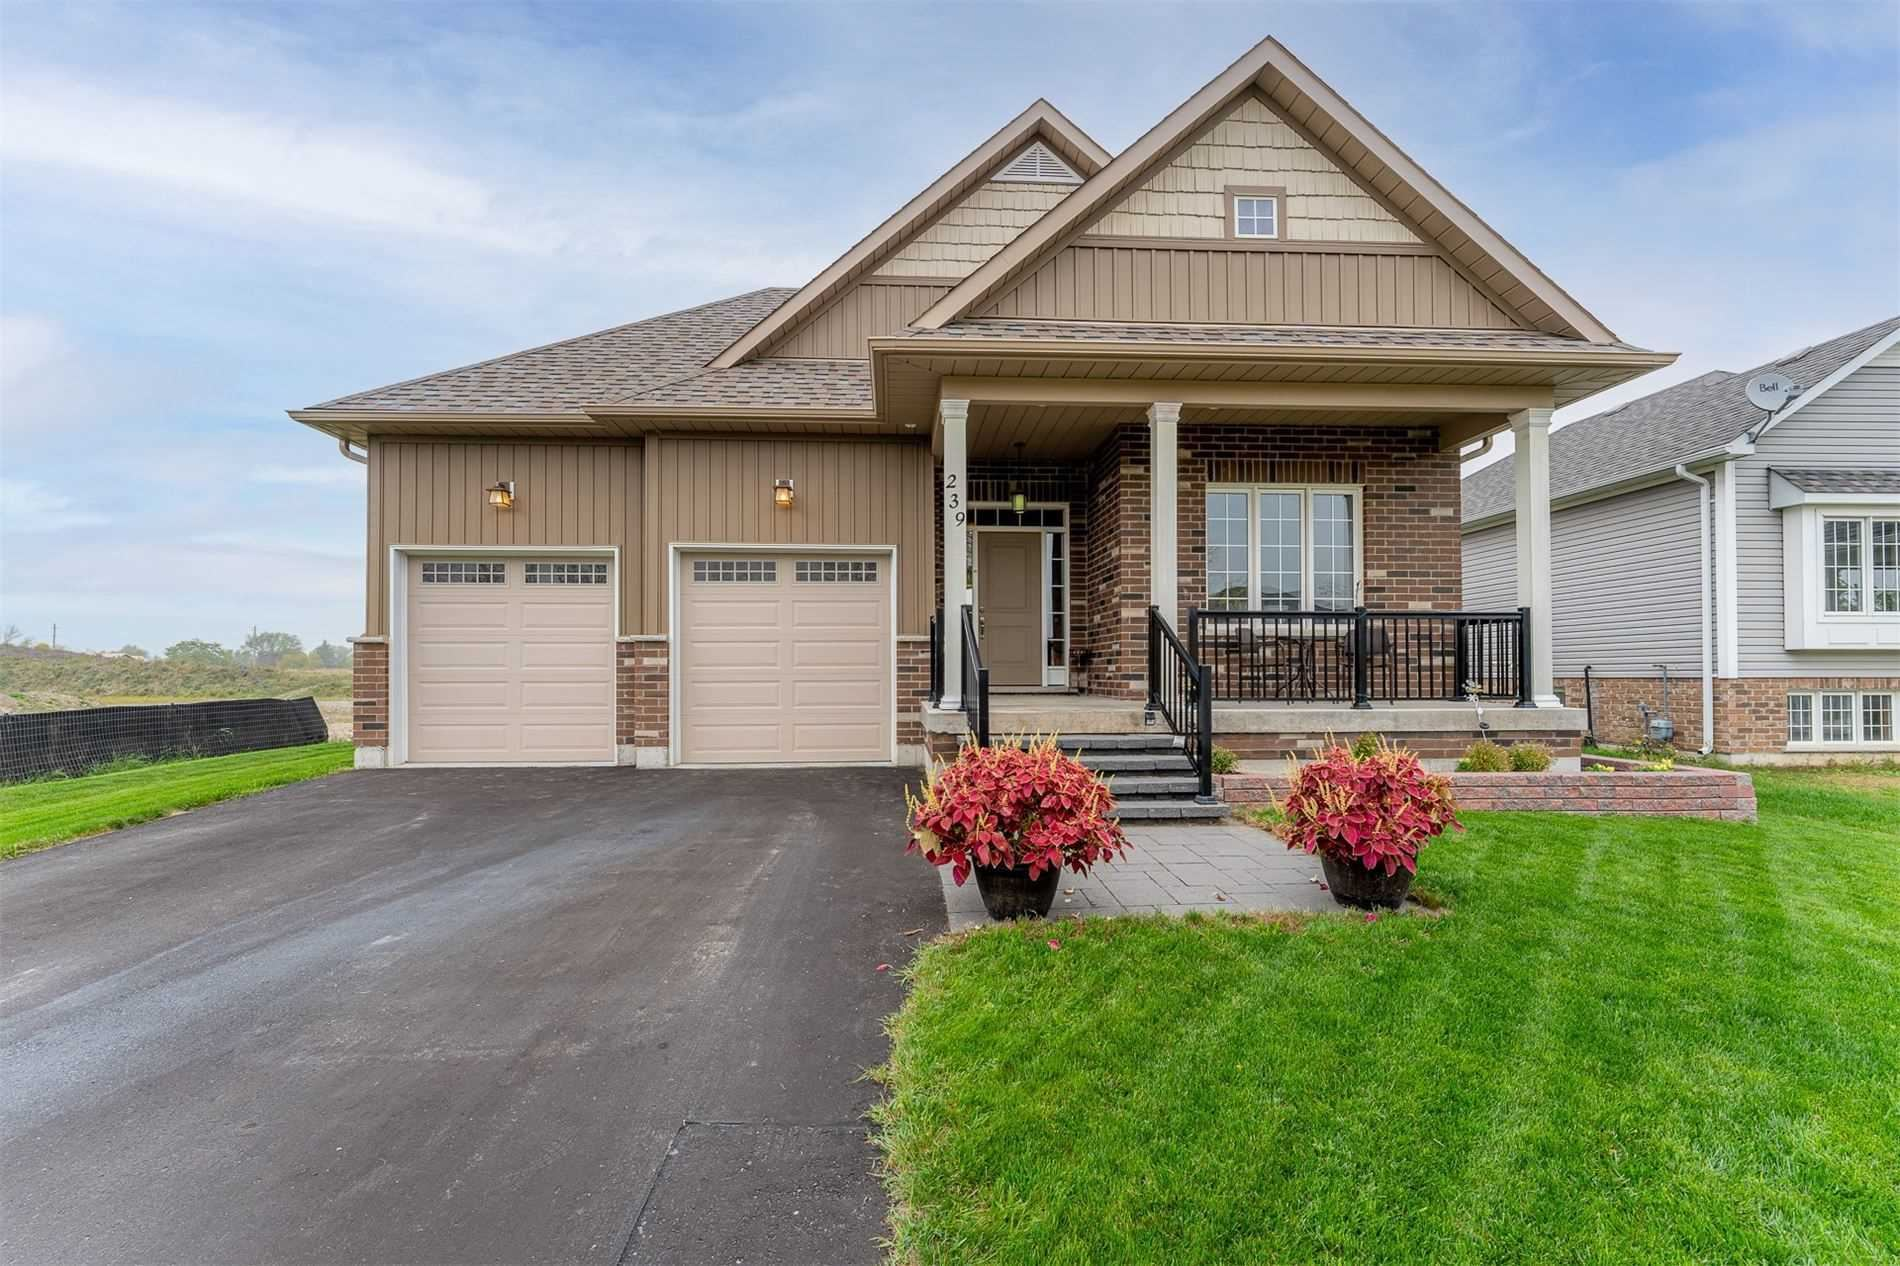 239 Centre St, Clearview, ON L0M 1S0 - MLS#: S5400876